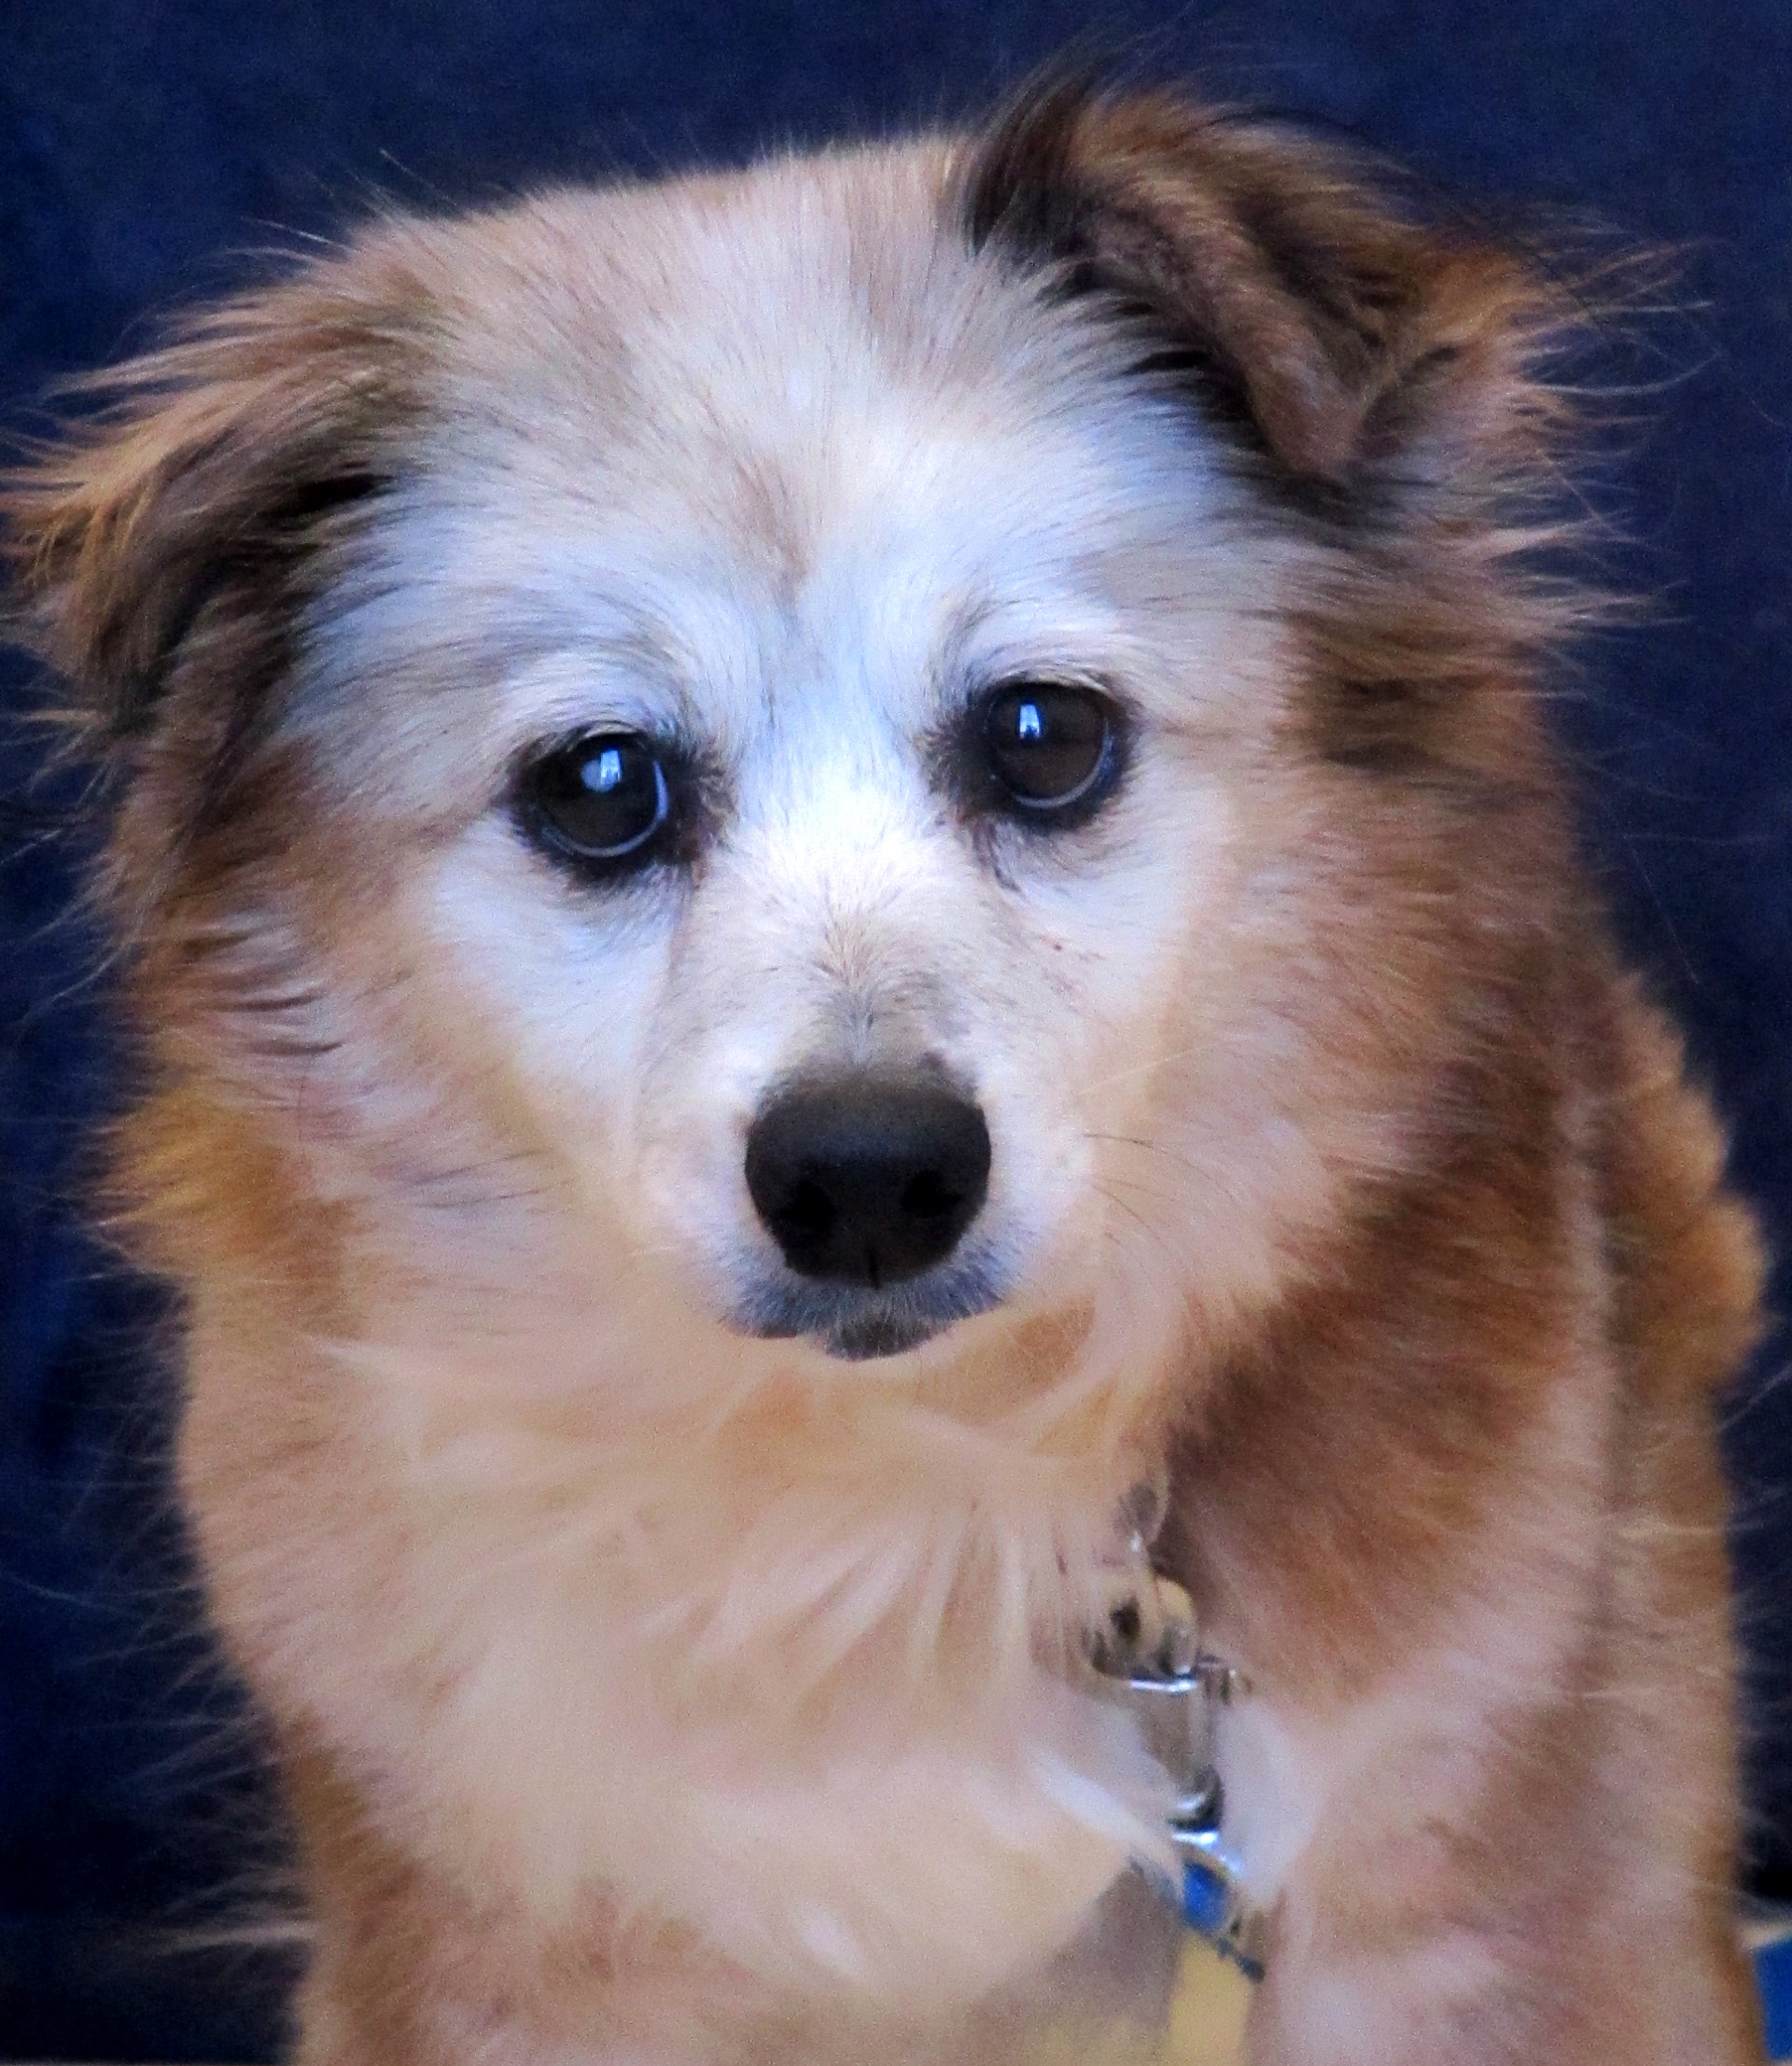 Molly is the definition of a sweet senior! She is a 13-year-old Dachshund/Terrier mix, looking for her retirement home. Molly is a great on her leash and knows her basic commands. She would prefer to snuggle on the couch over playing with toys.